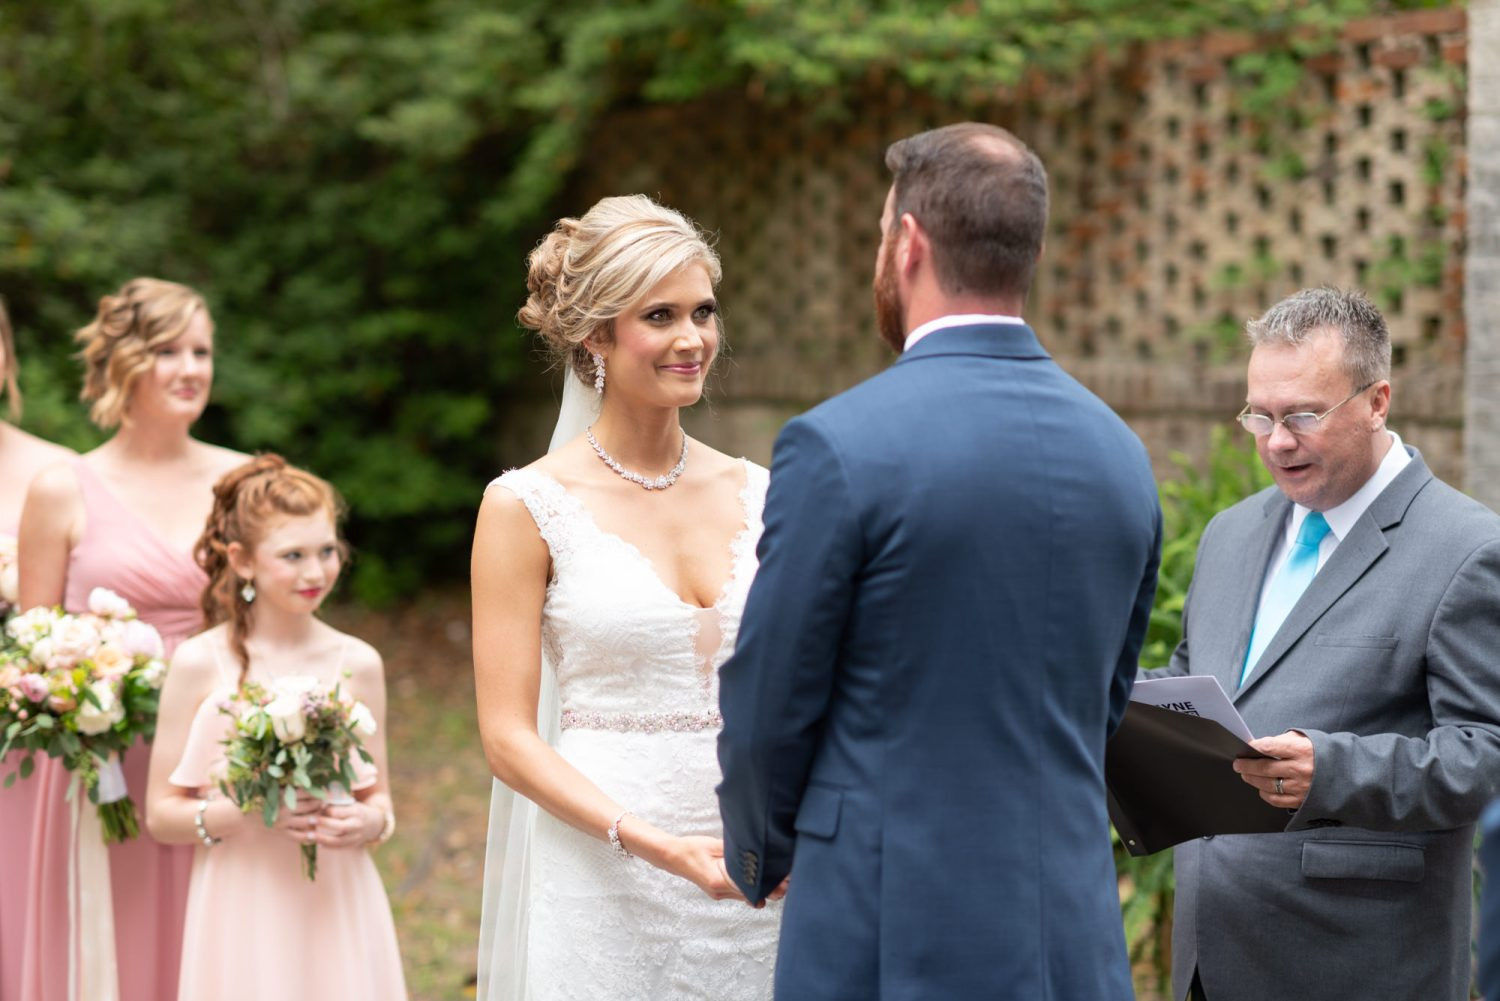 Bride smiling at groom during the ceremony - Brookgreen Gardens